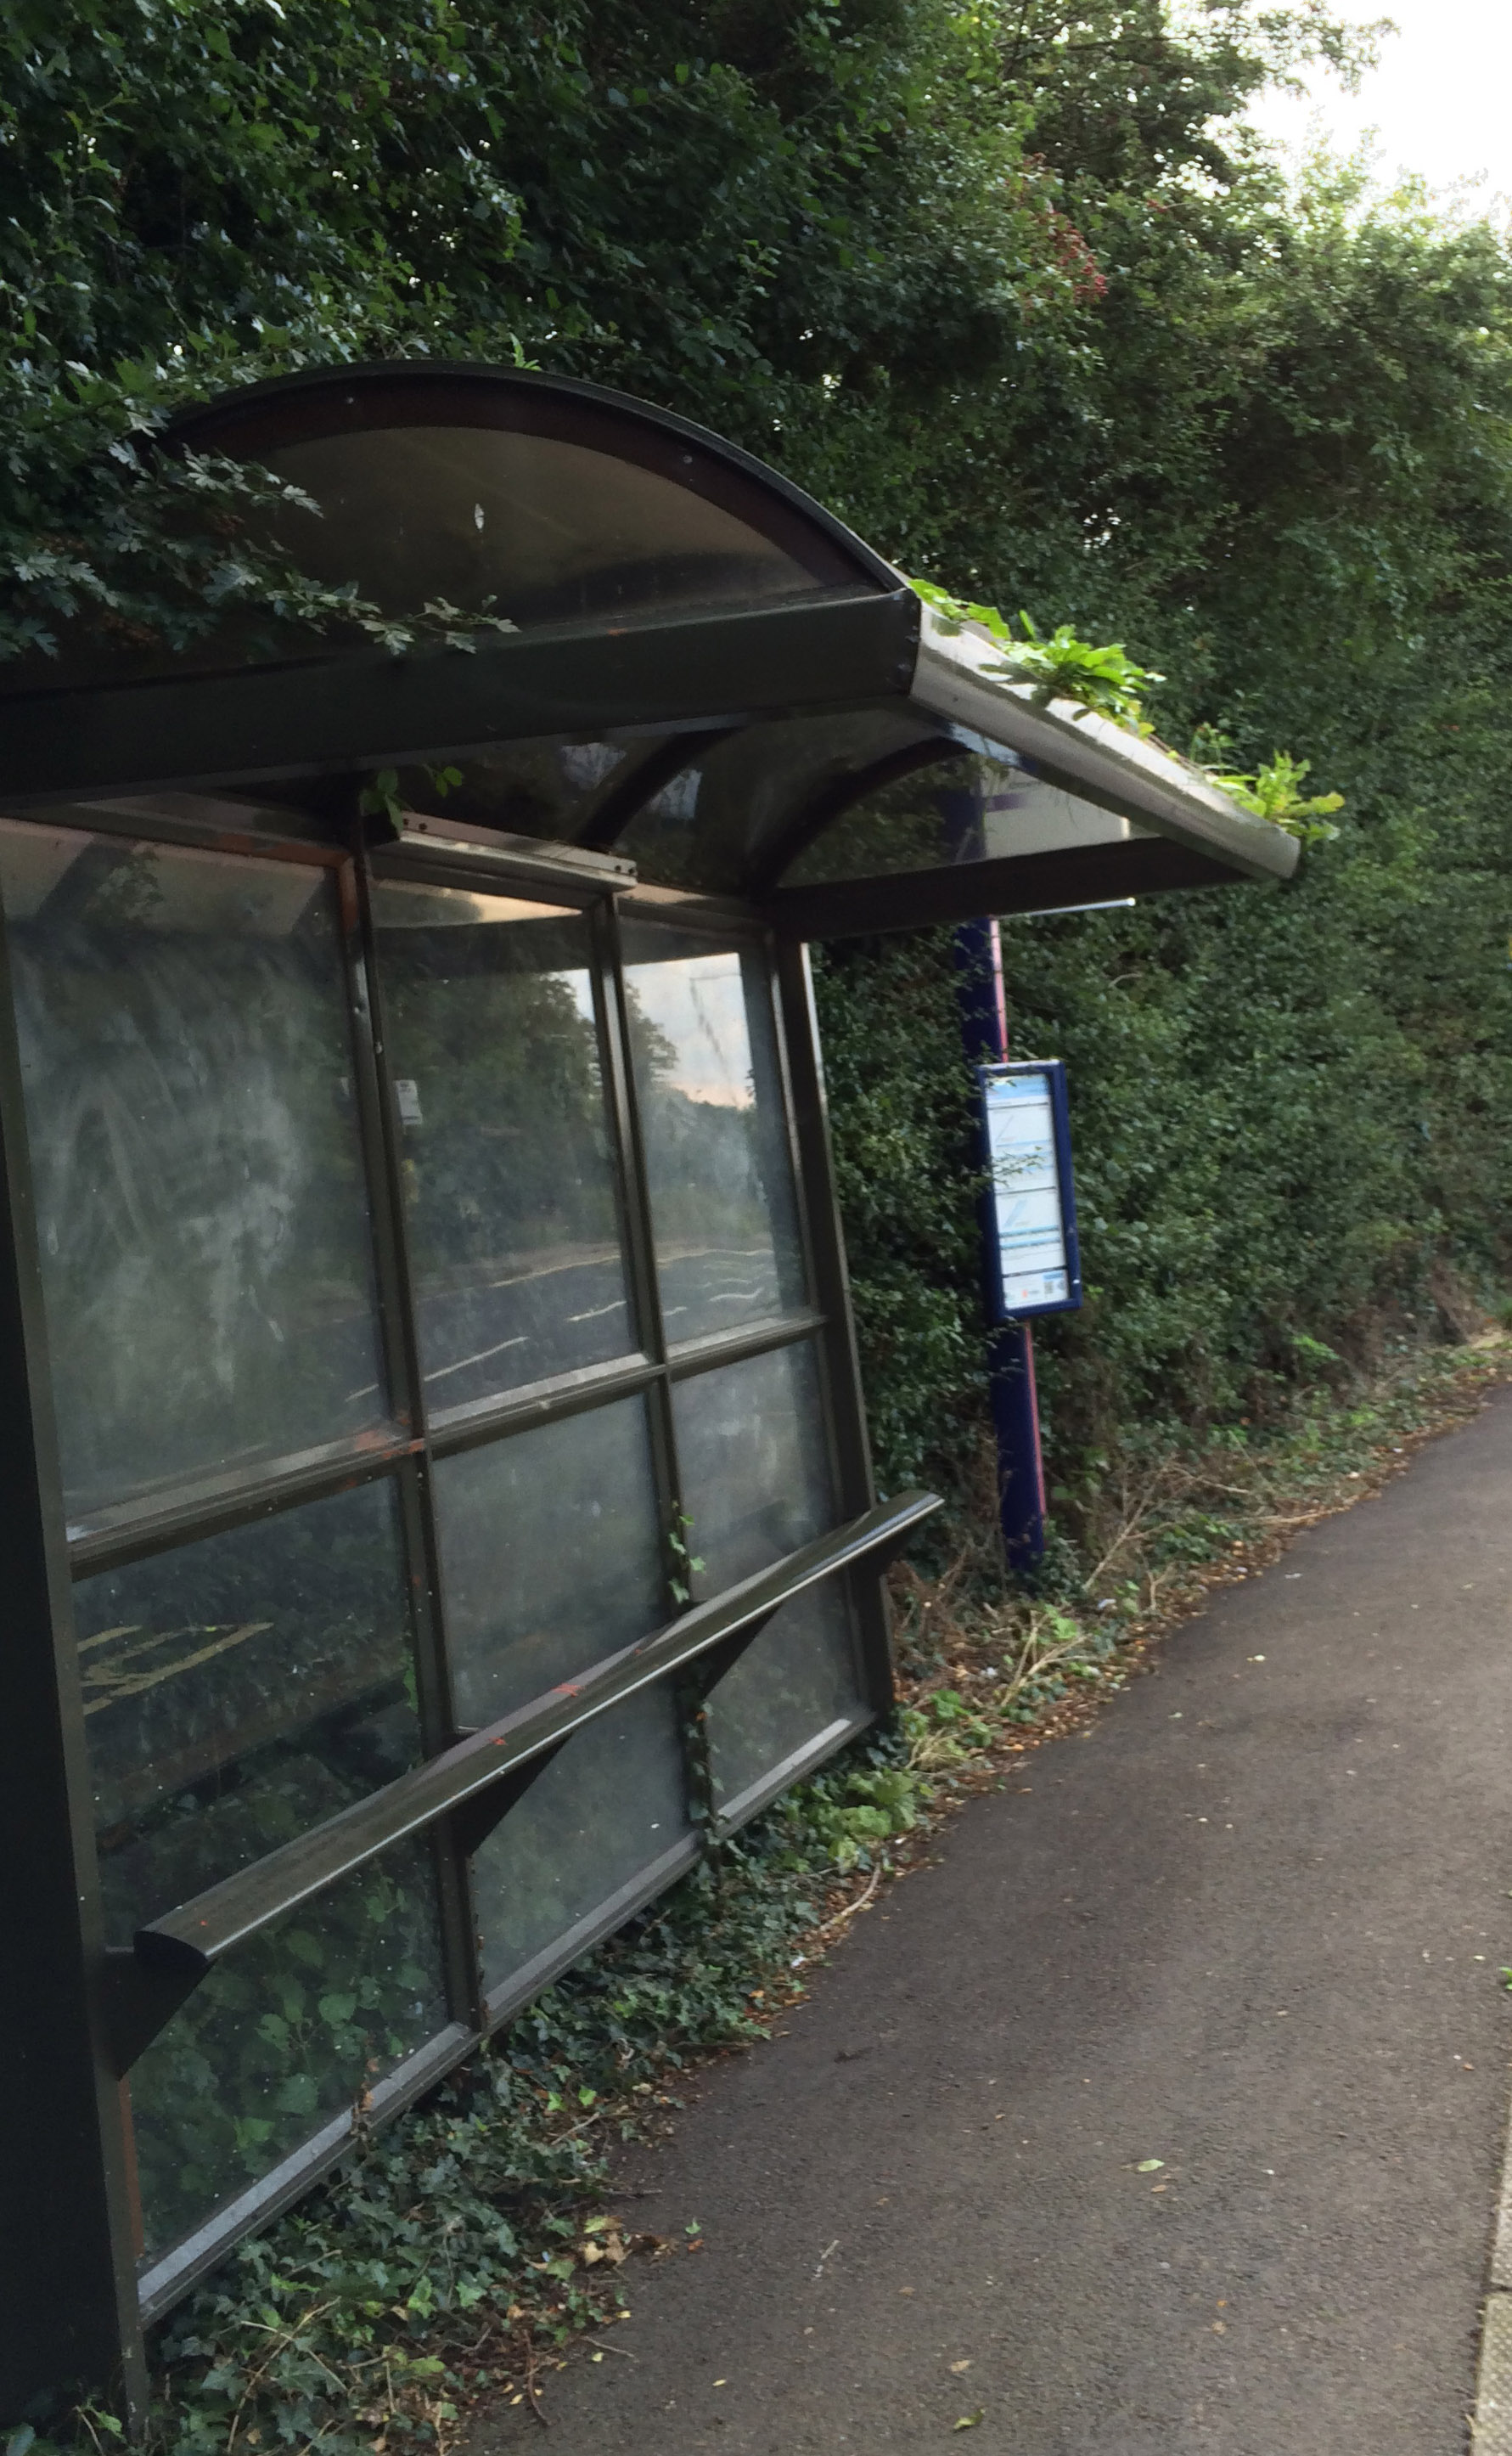 Weeds overgrowing a bus shelter in Foxwood Lane